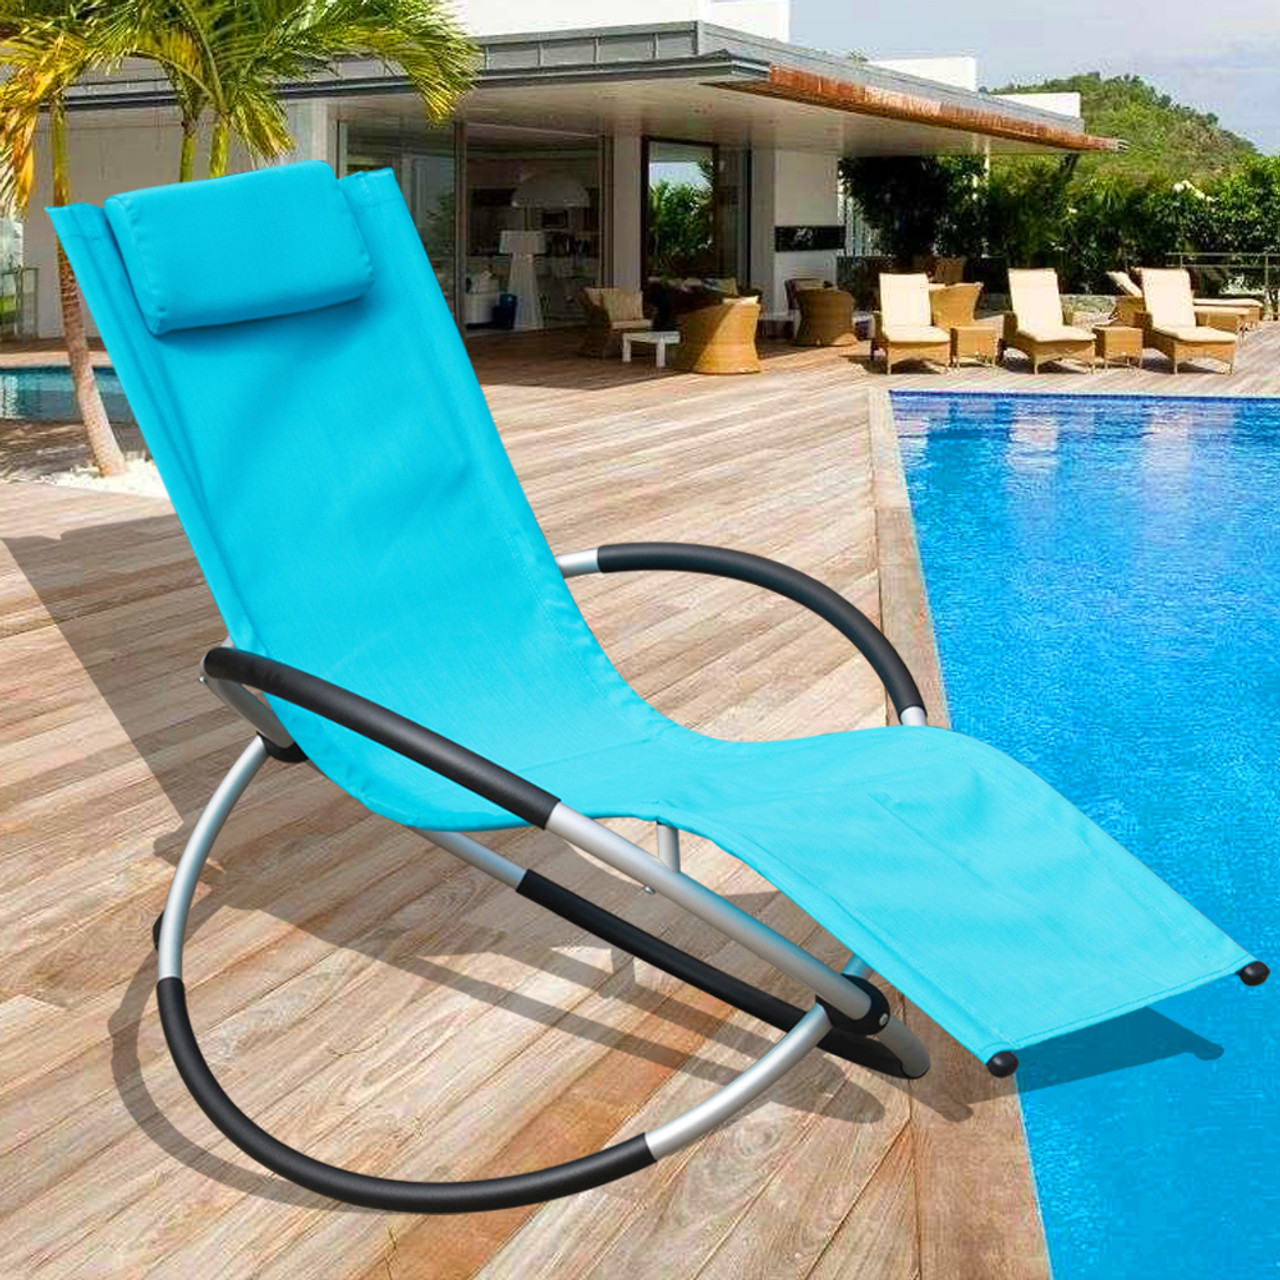 outdoor look extraordinary chaise decorating modern lounge top splendid pool chairs furniture patio image that